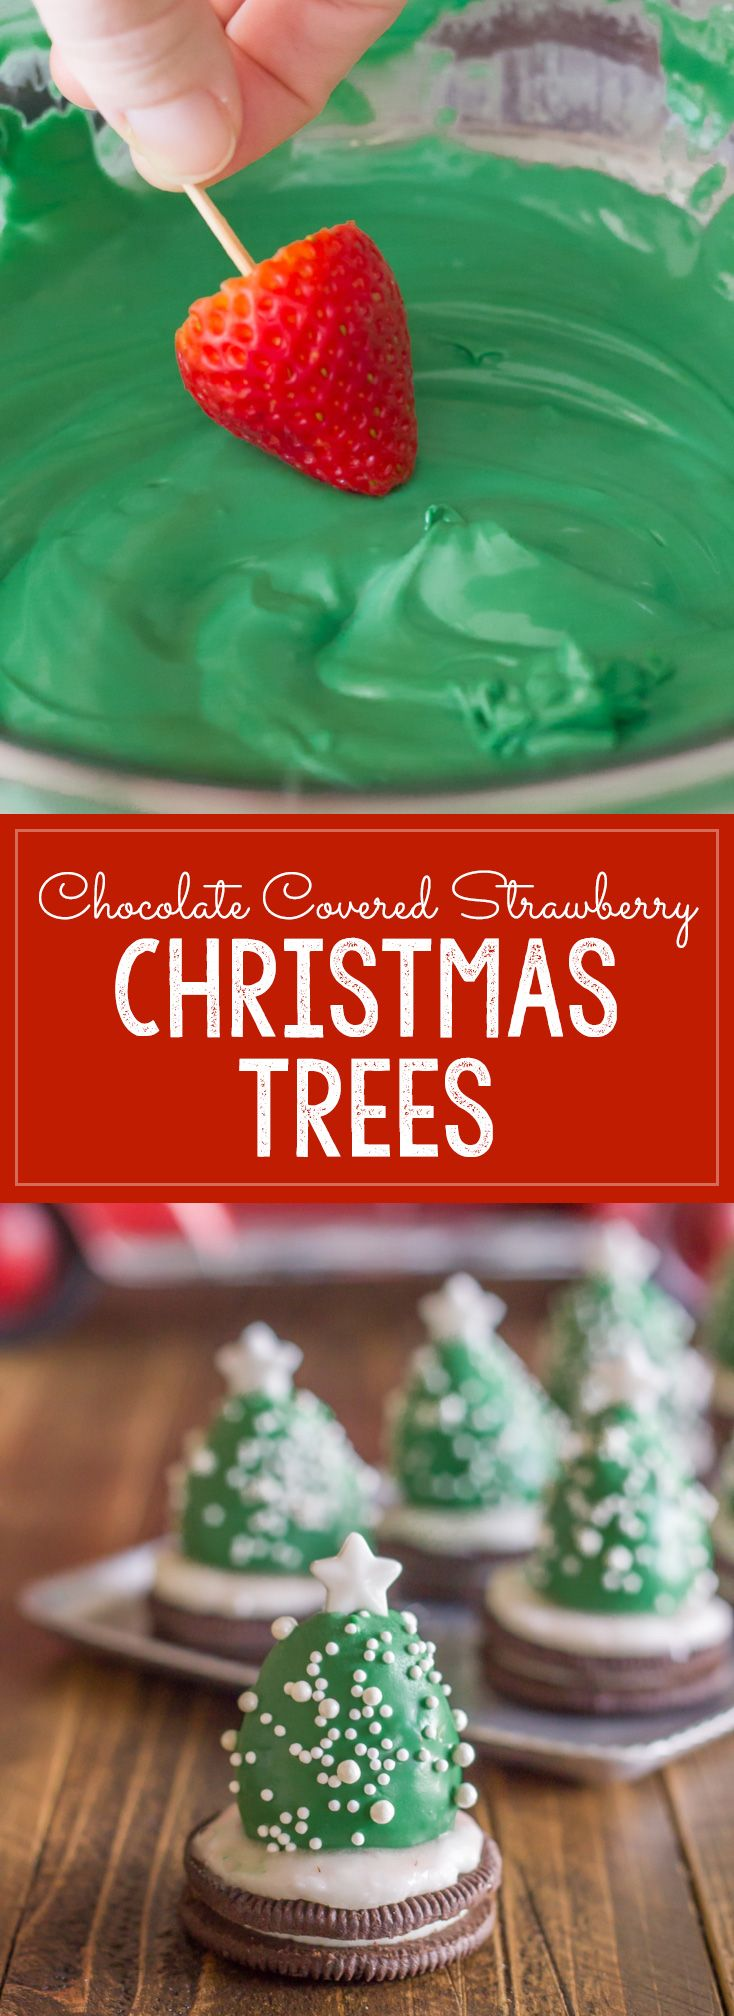 Strawberry Dipped Christmas Trees! A fun and easy Christmas project to do with your kiddos, and an adorable holiday snack! Great homemade treat for classroom parties, potlucks, Christmas parties etc.